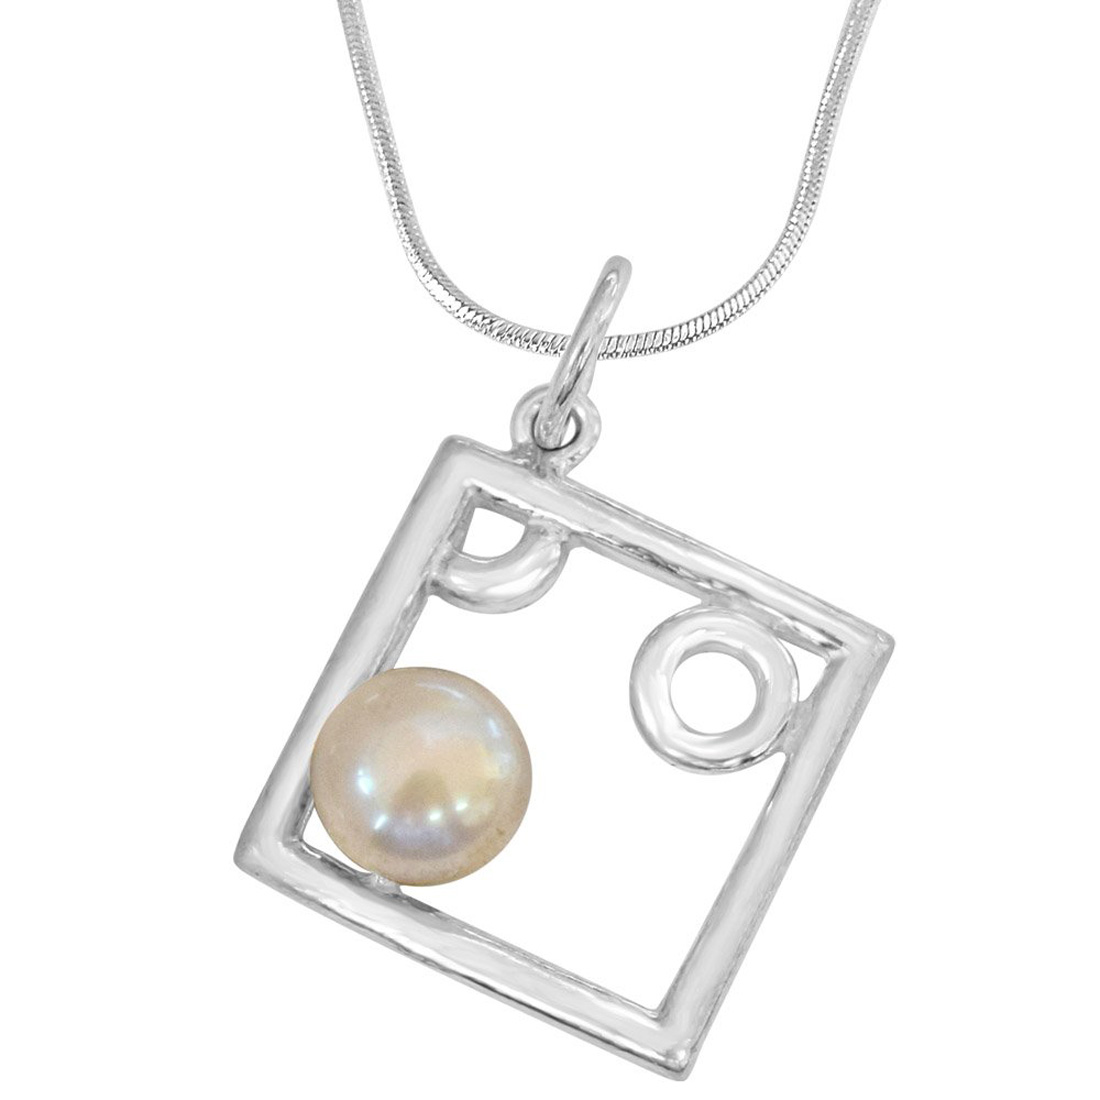 Pearl Delight - Square Shaped Real Pearl and Sterling Silver Pendant with Silver Finished Chain for Girls (SDS79)